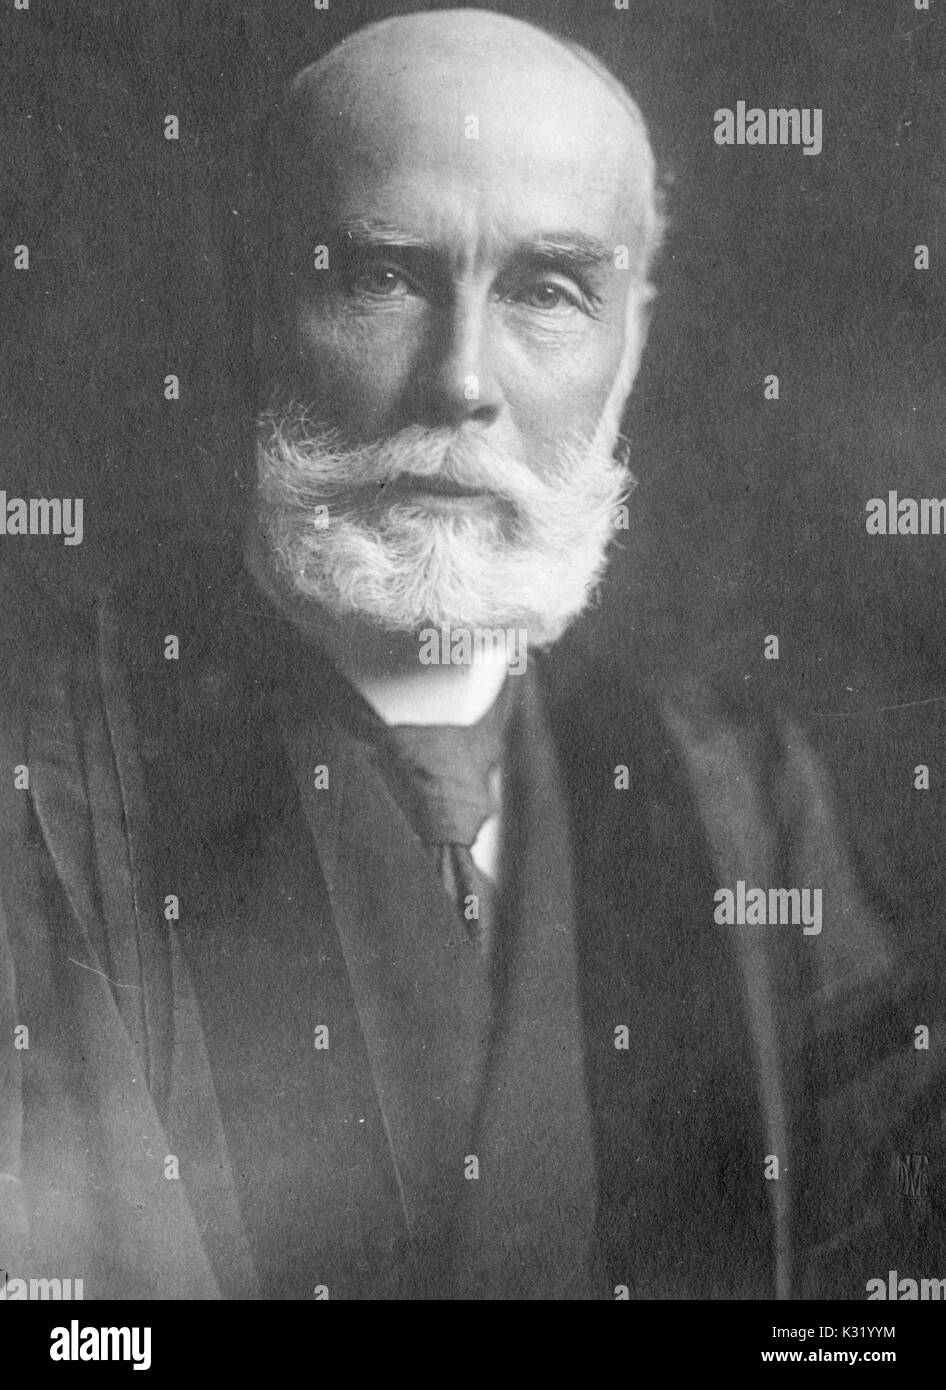 Sepia tone portrait, shoulders up, of Samuel Fessenden Clarke, famed zoologist, professor of natural history, and fellow at Johns Hopkins University, with beard and wearing academic robe and tie, Baltimore, Maryland, 1920. - Stock Image